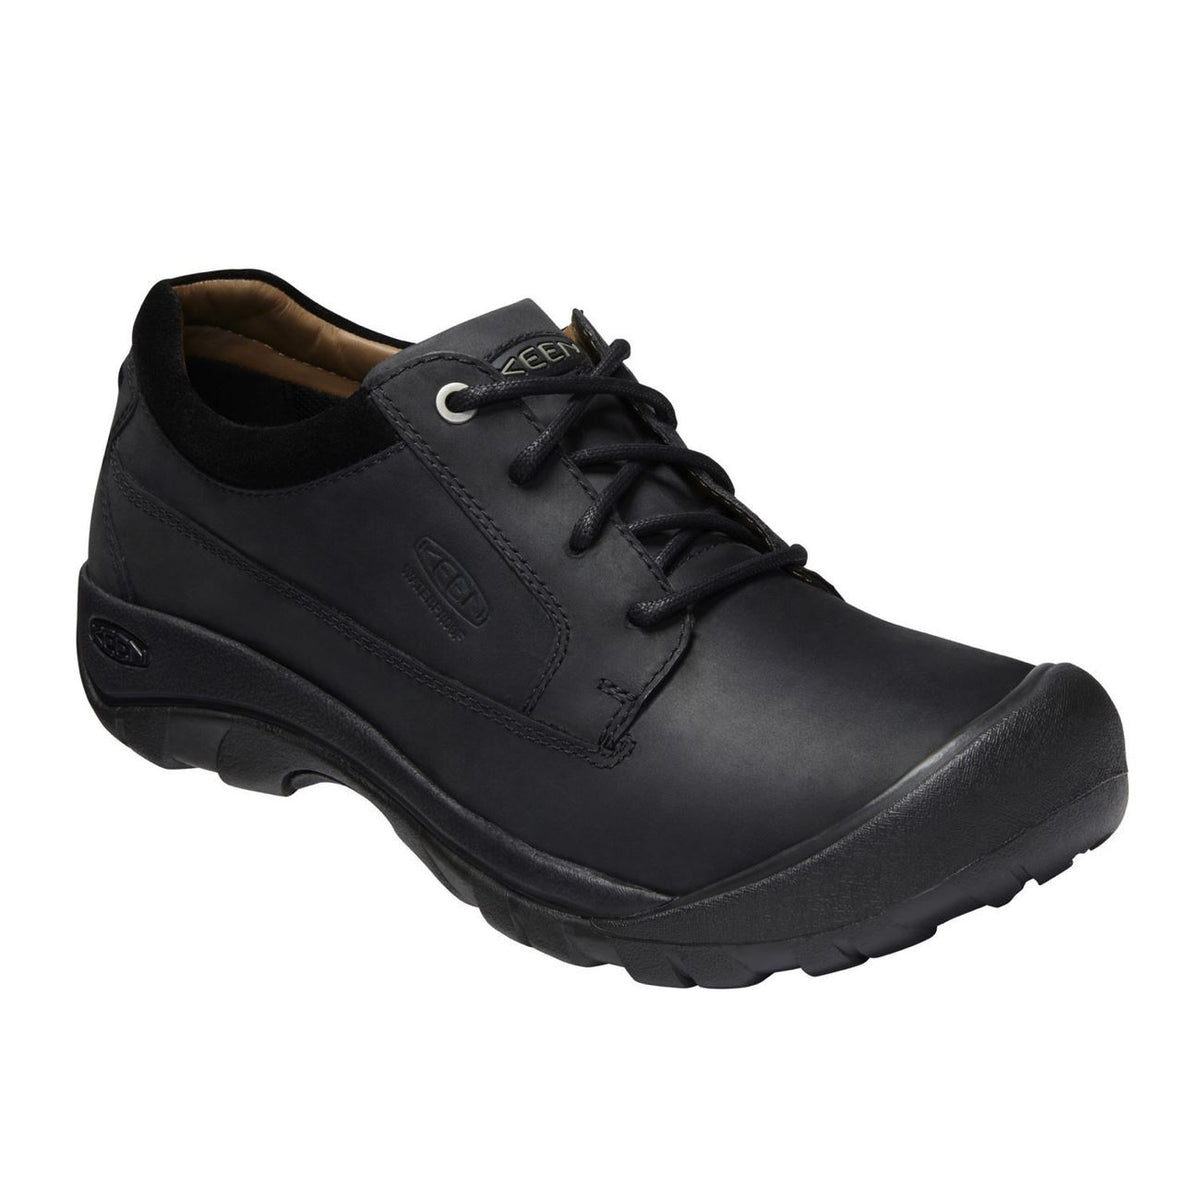 Keen, Austin Casual Mens, Shoes, Full Grain Leather, Black Shoes Keen Black 10